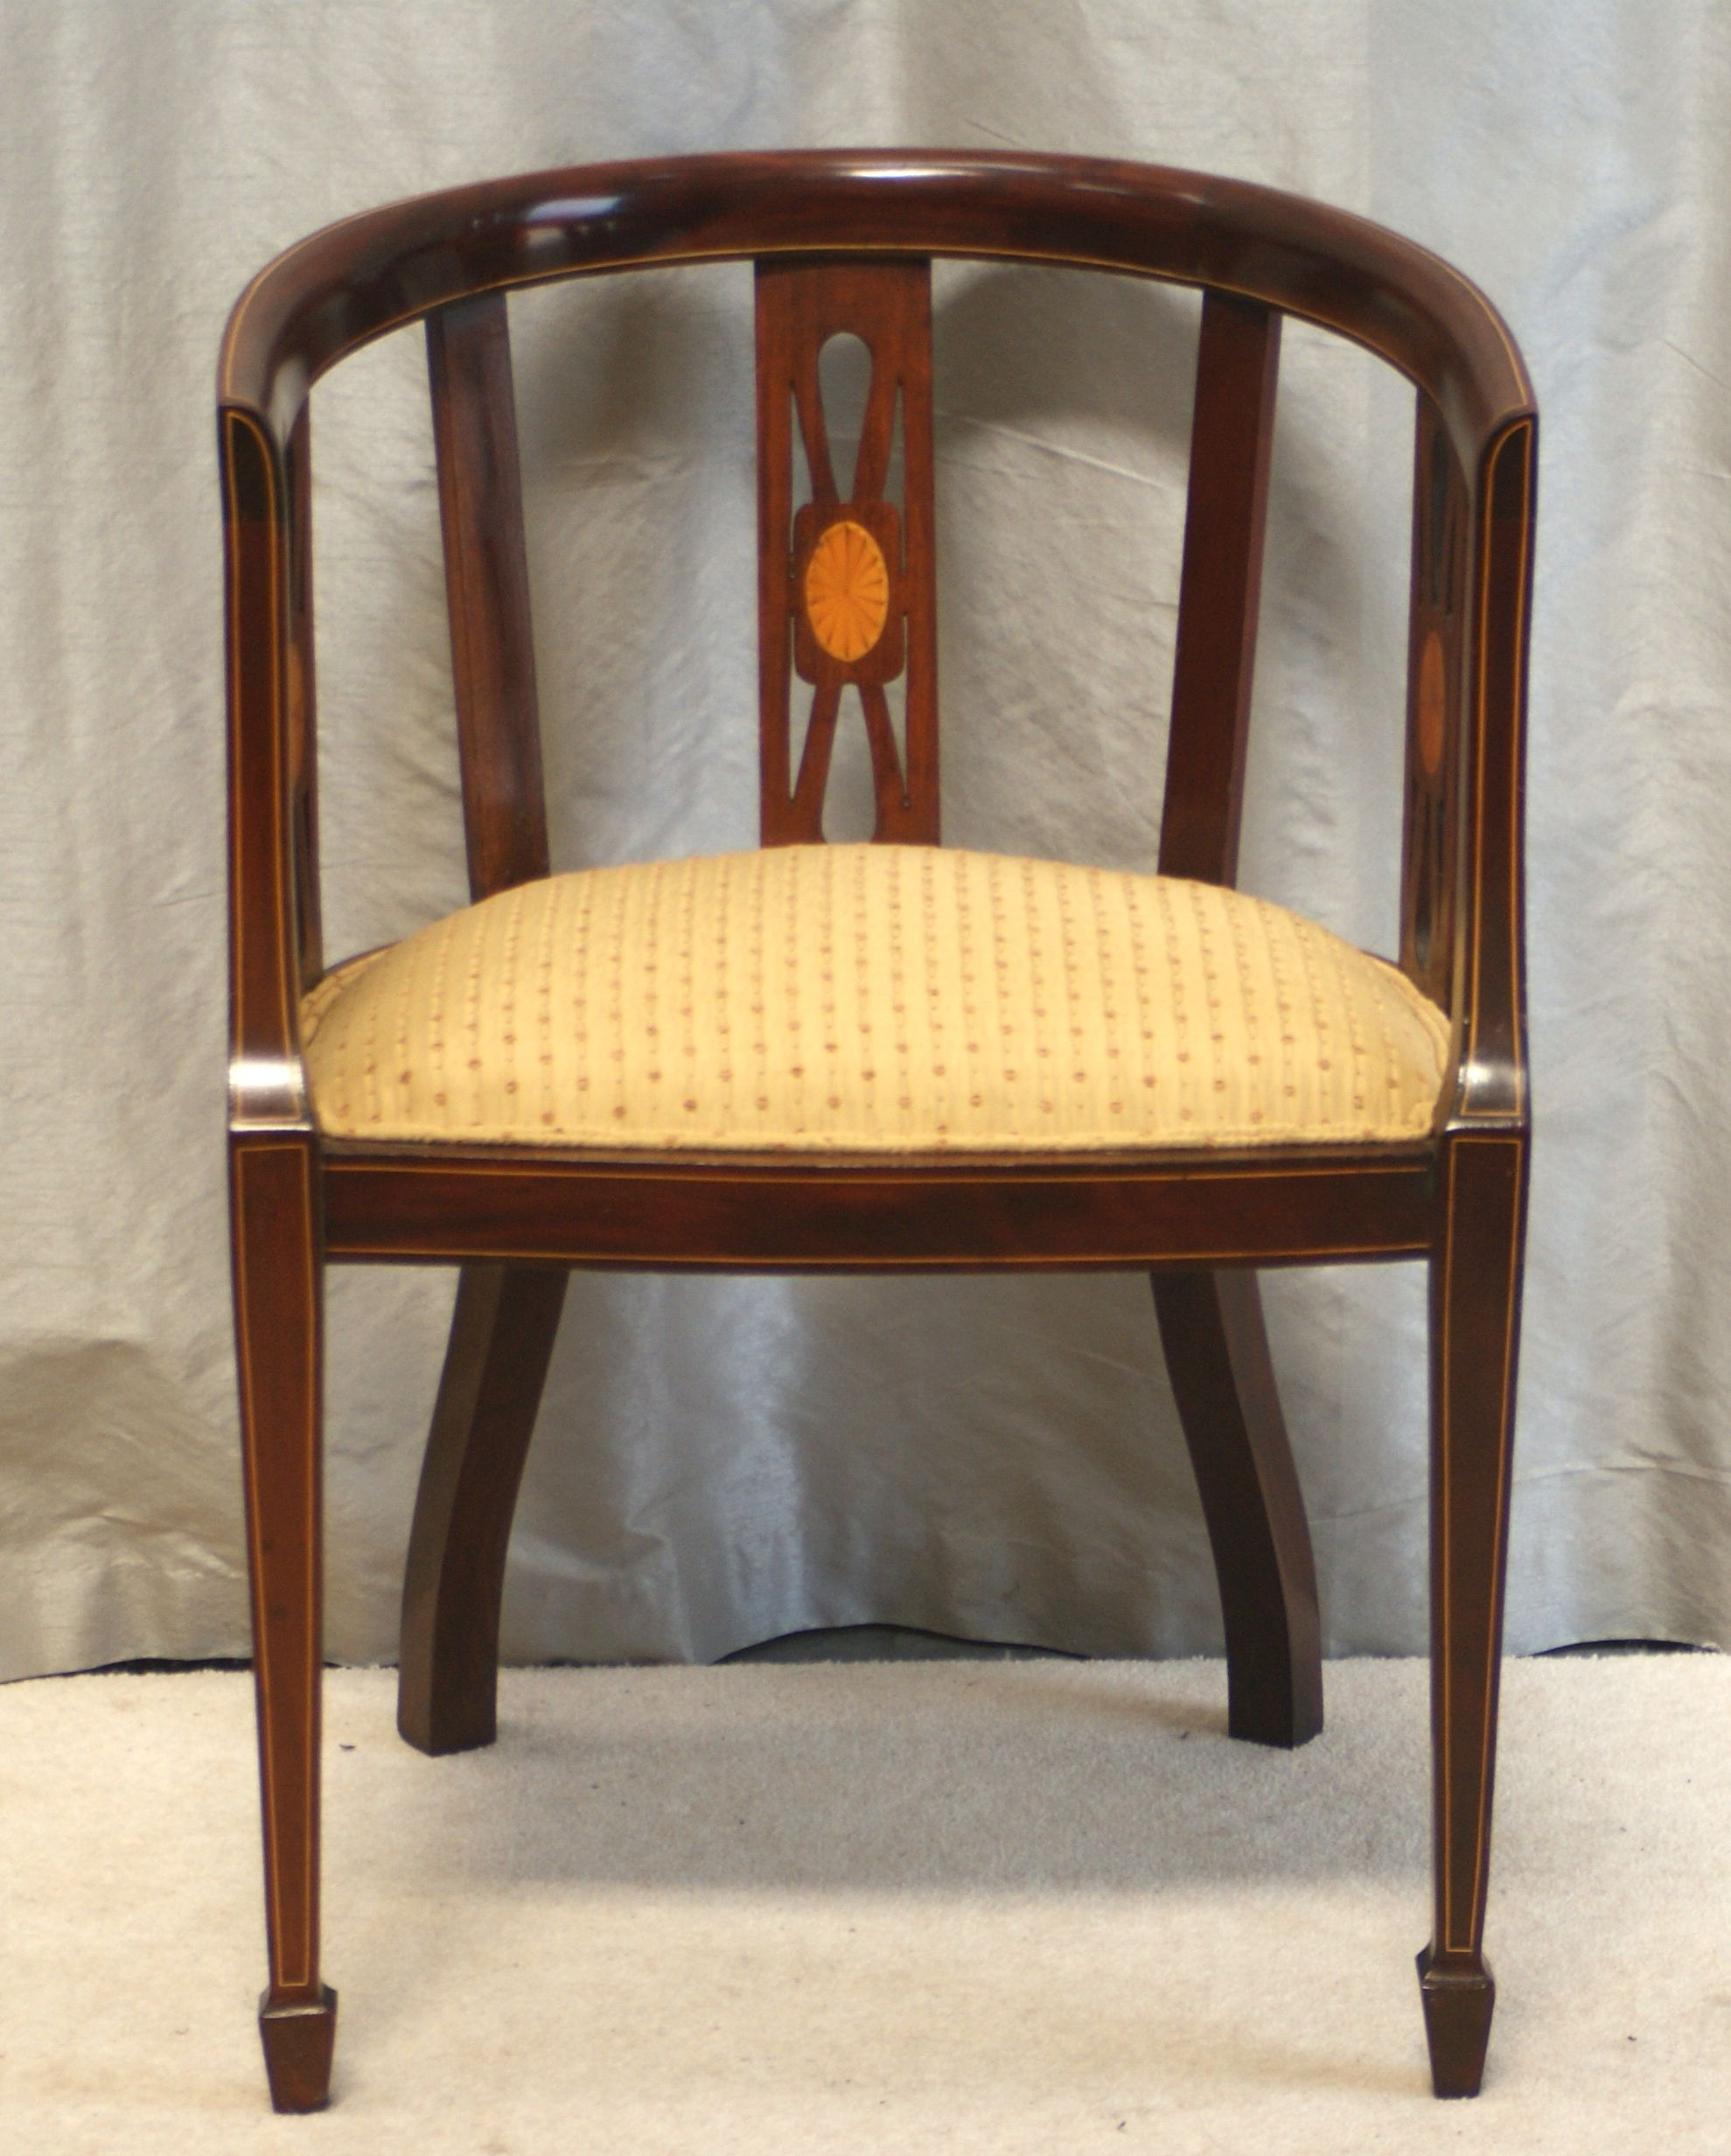 Fine Inlaid Mahogany Desk Chair Edwardian Sold By Www Antiquedesks